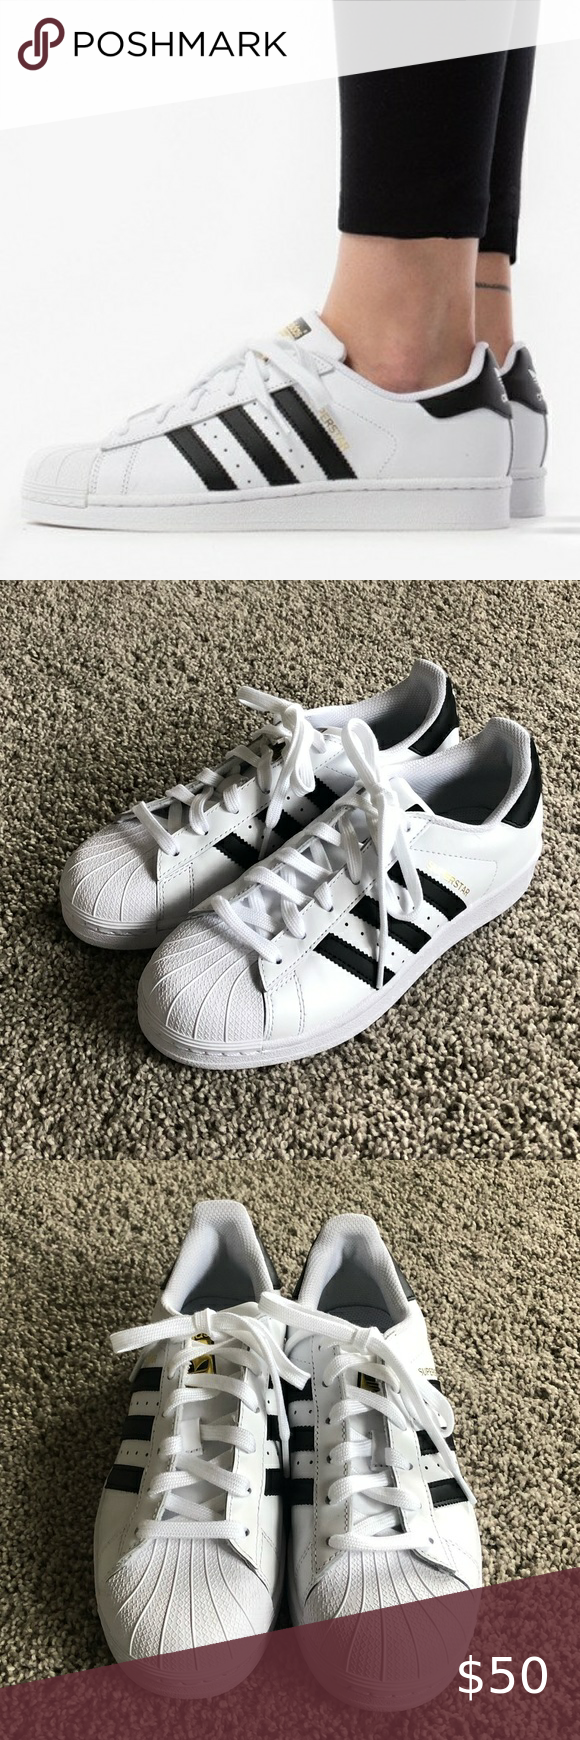 All White Adidas Superstar Sneakers Size 6 Womens